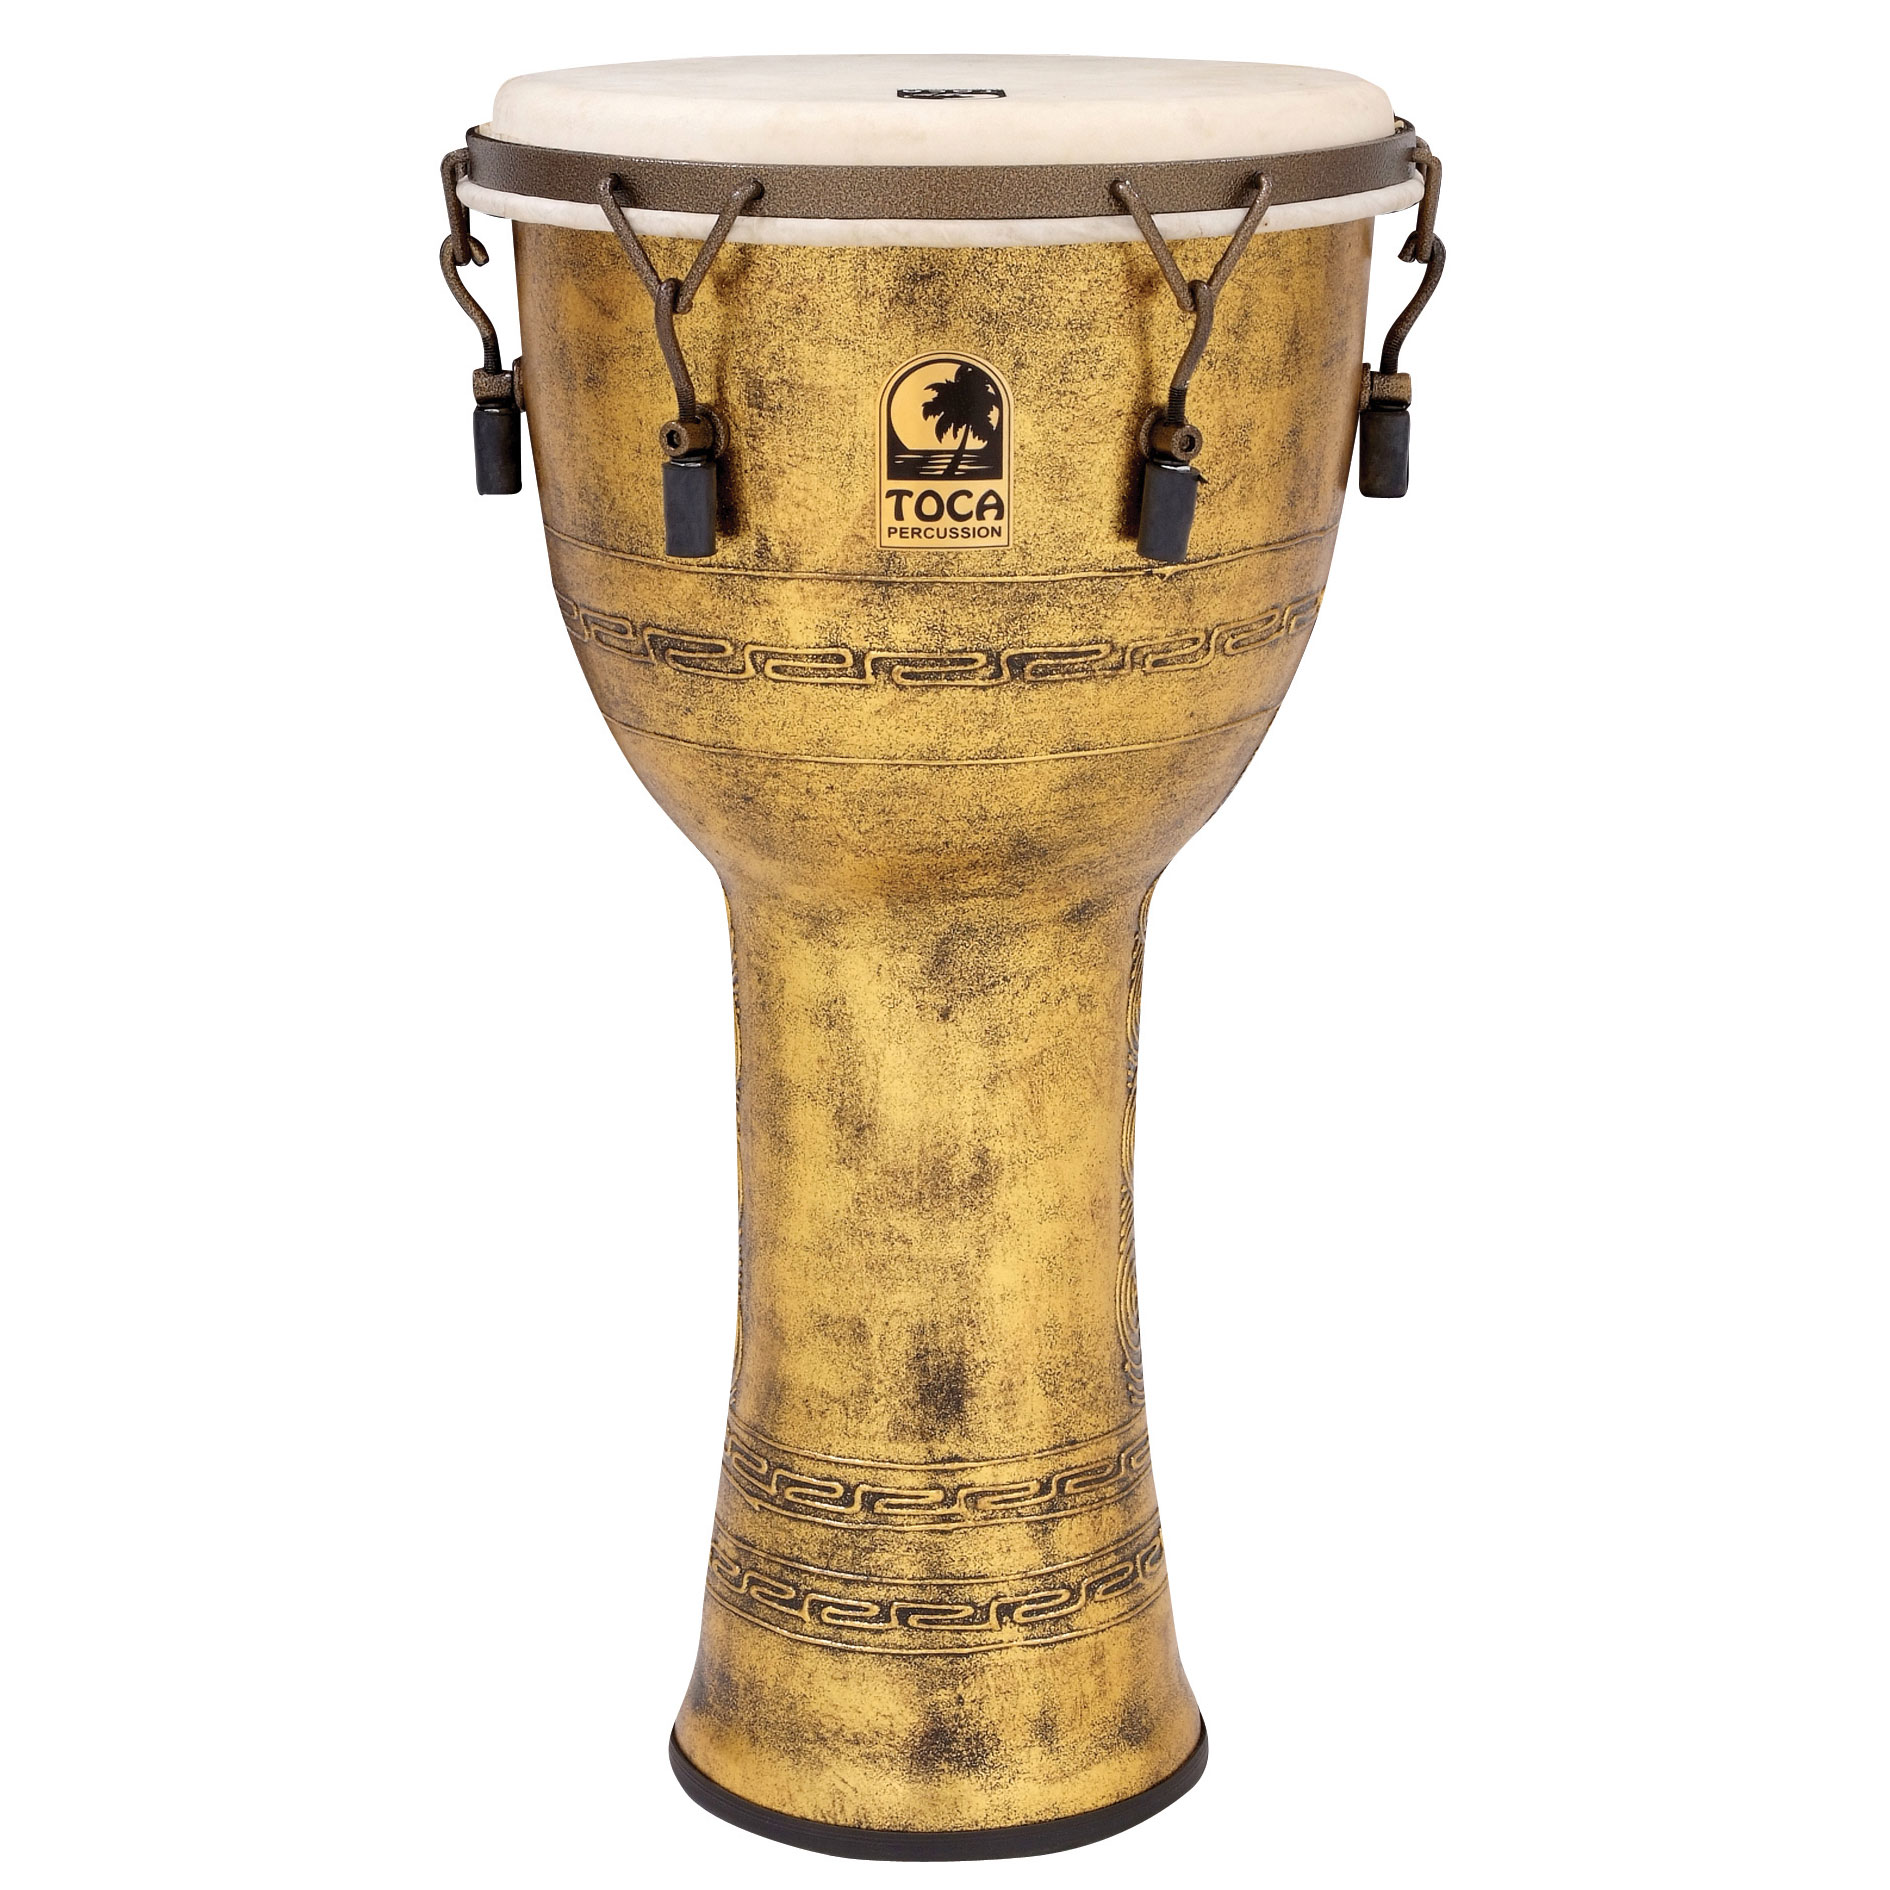 "Toca 12"" Freestyle Mechanically-Tuned Djembe with Extended Rim"